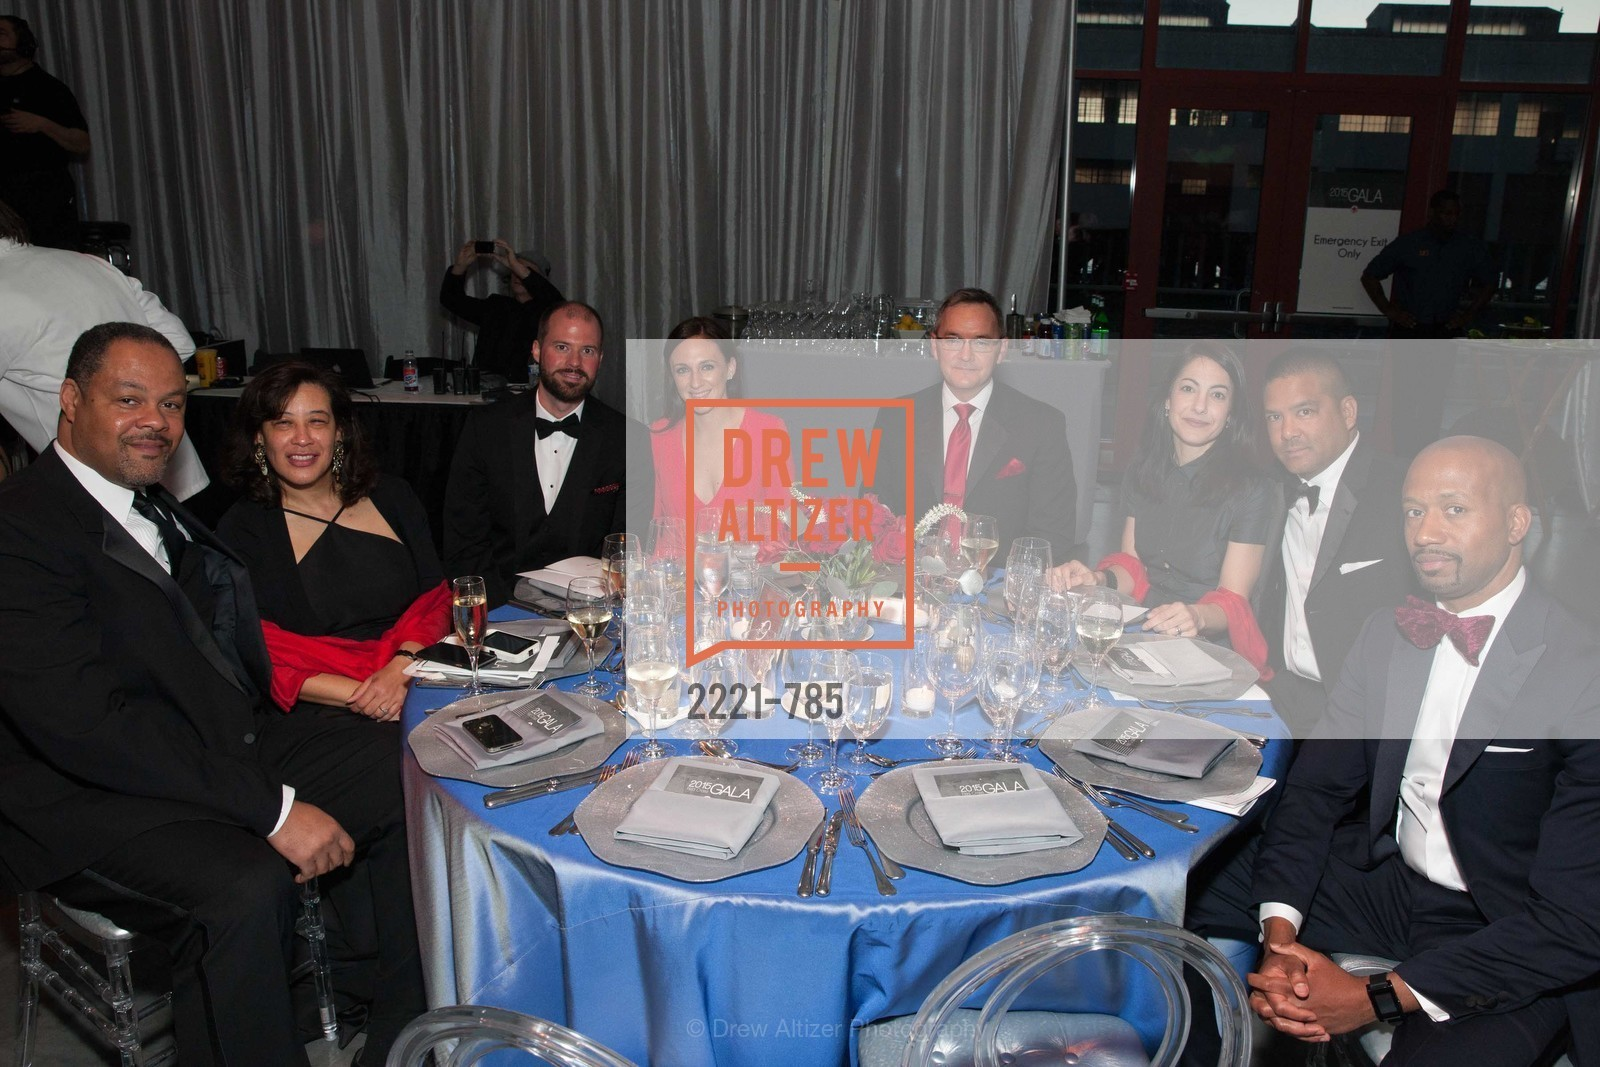 Carl McKenzie, Soo Ling Youngblood, Chris Foster, Joy Foster, Rob Black, Stephanie Anderson, OJ Leonardo, Jimi Harris, 2015 RED CROSS Gala, US, April 12th, 2015,Drew Altizer, Drew Altizer Photography, full-service agency, private events, San Francisco photographer, photographer california